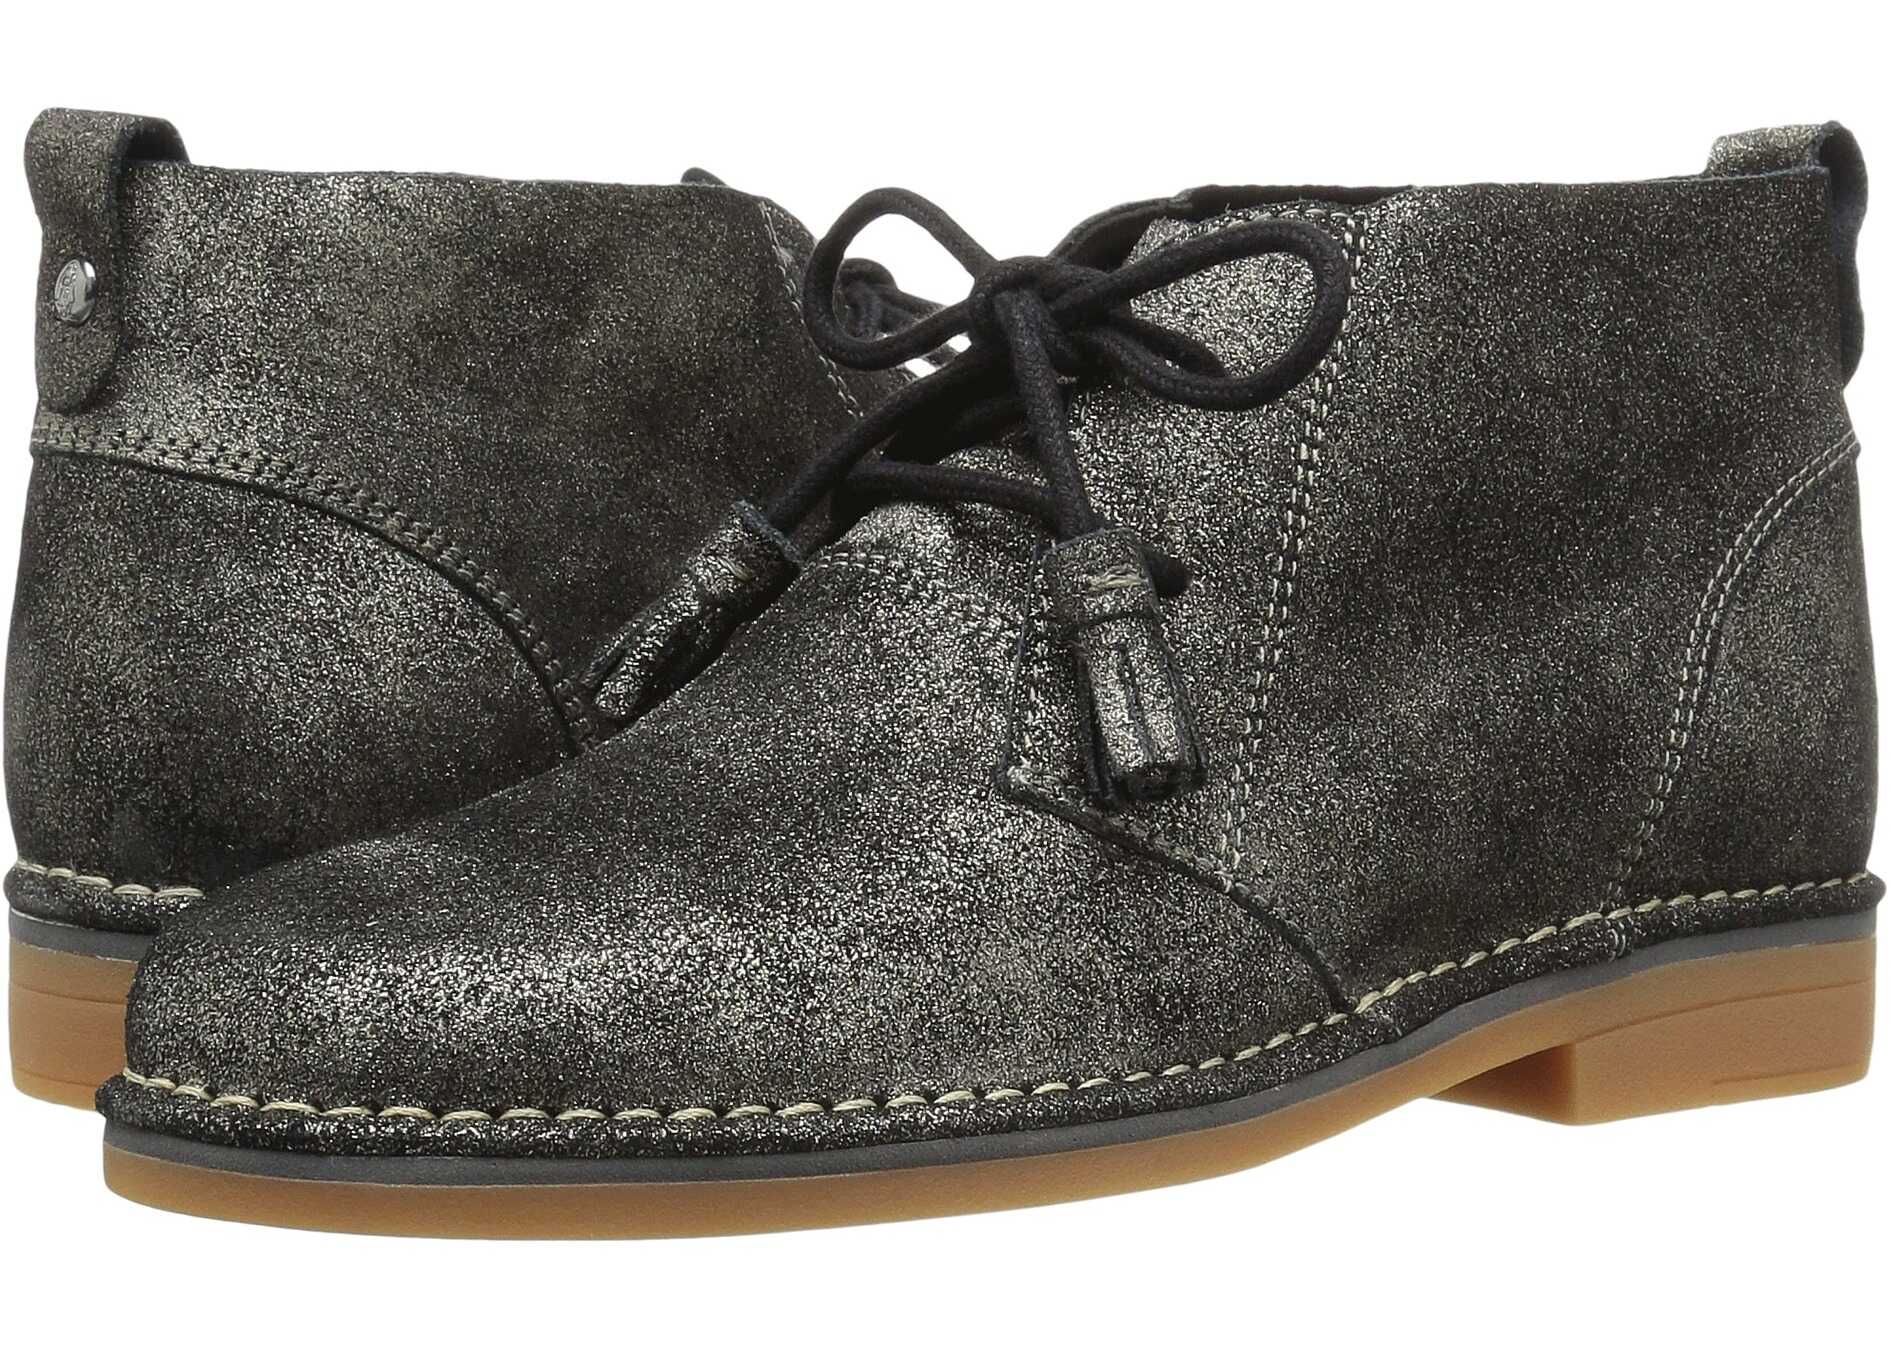 Hush Puppies Cyra Catelyn Gunmetal Glitter Leather